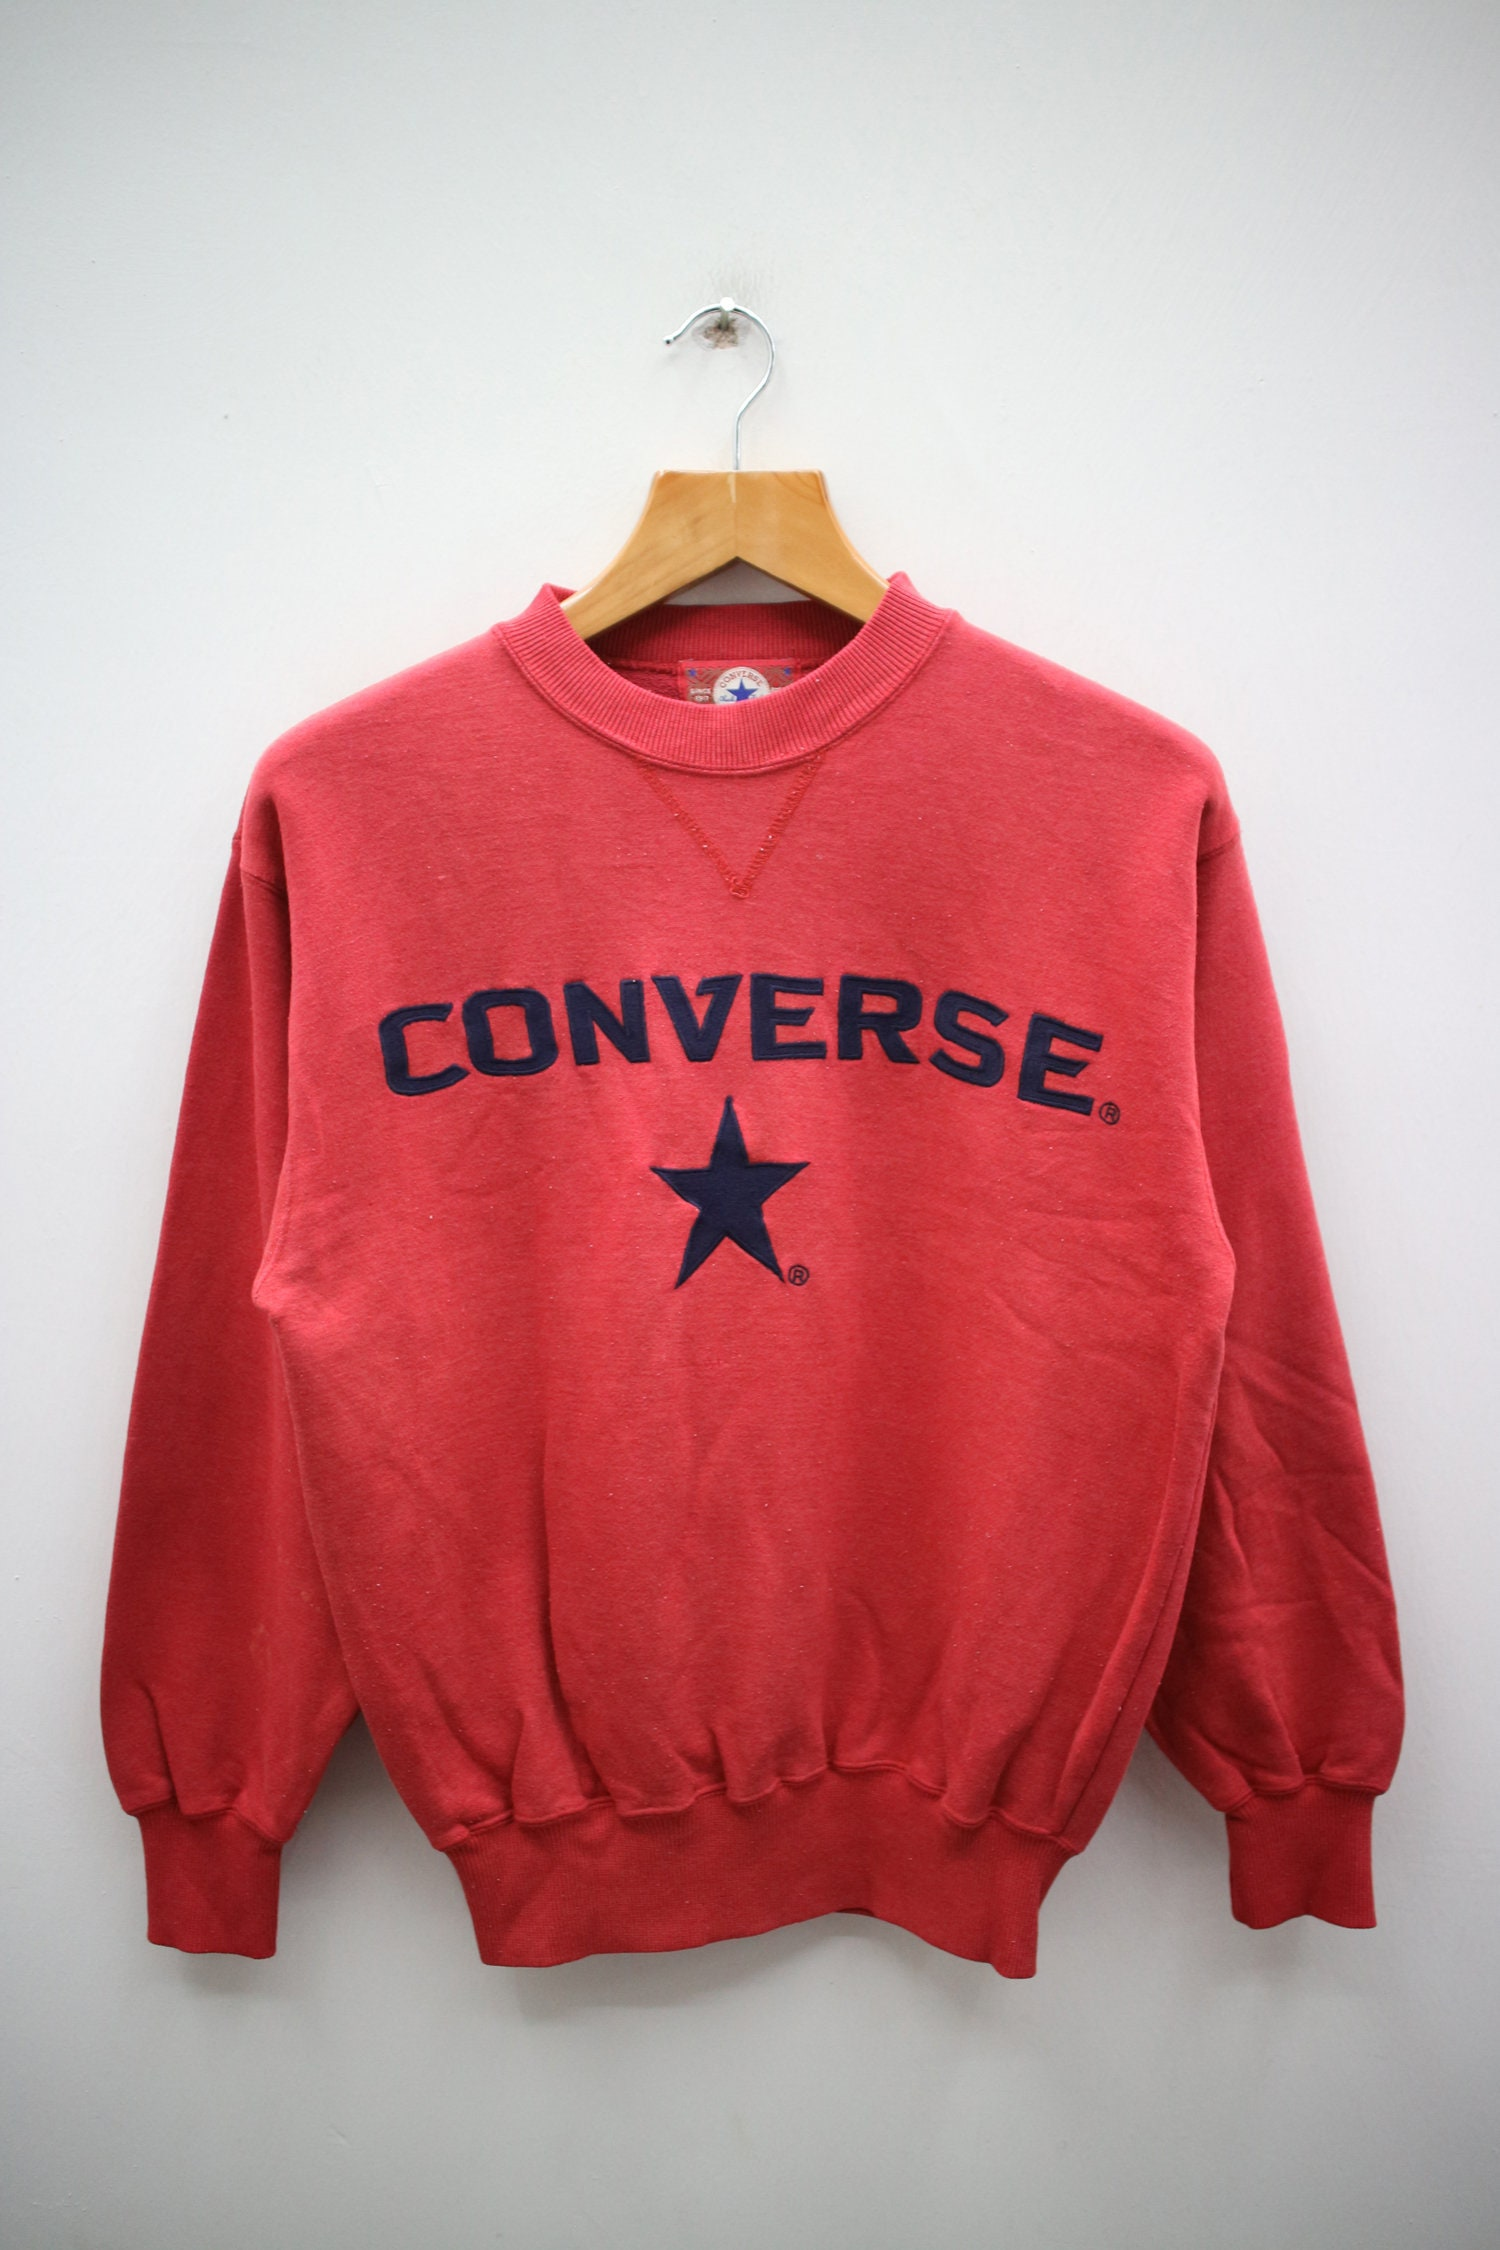 eecb731a01e9f Vintage CONVERSE All Star Chuck Taylor Big Spell Big Logo Streetswear Red  Pullover Sweater Sweatshirt Size S